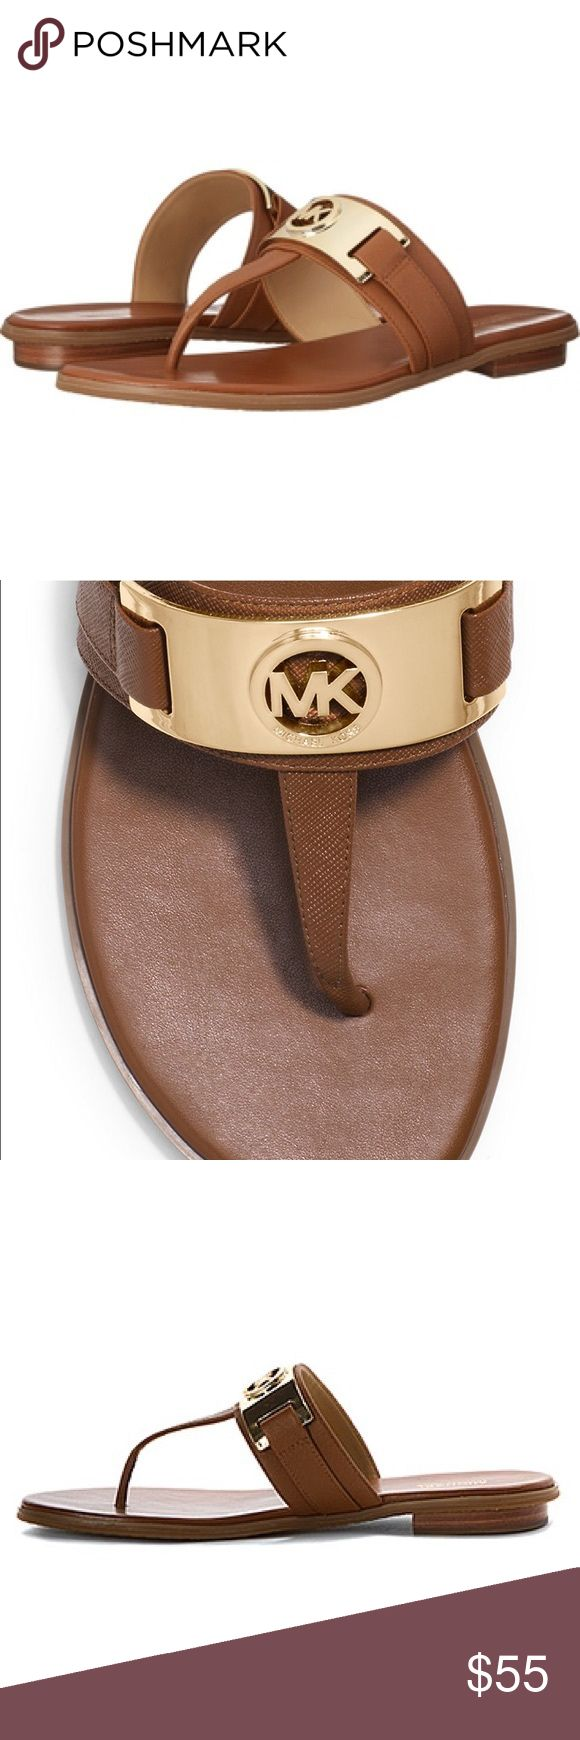 Michael kors warren thong Camel flip flop with mk logo MICHAEL Michael Kors Shoes Sandals